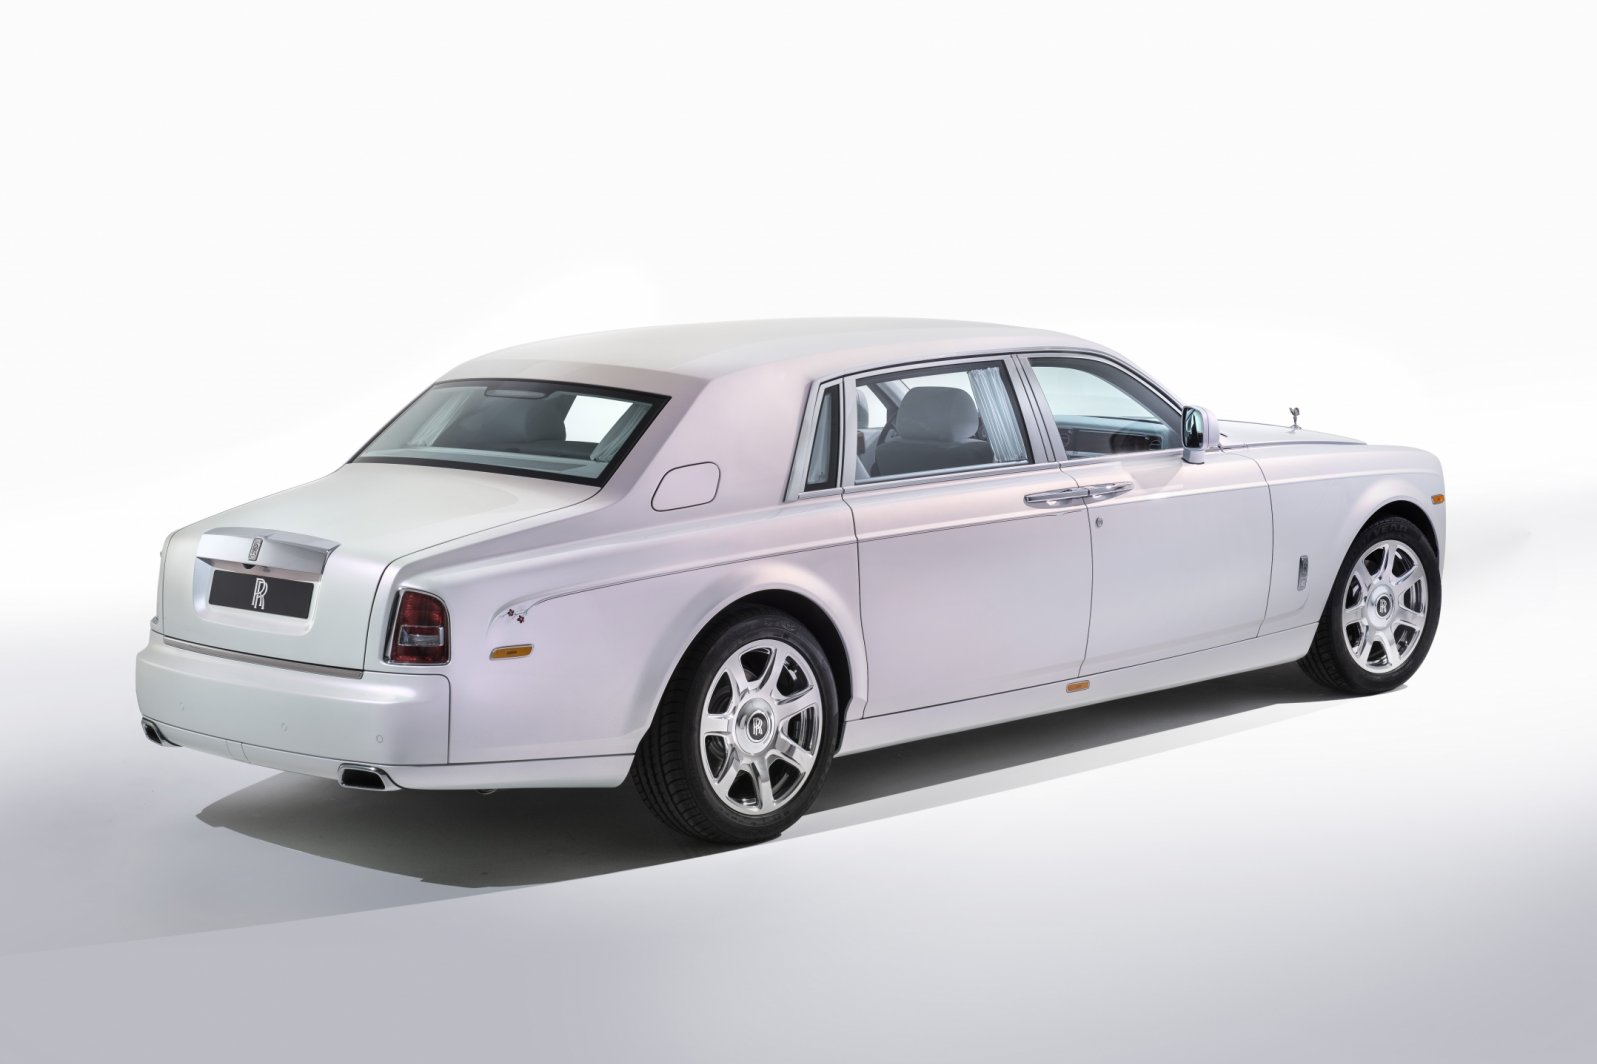 Phantom Serenity 2017 Rolls Royce Phantom Serenity Car Photos Catalog 2018